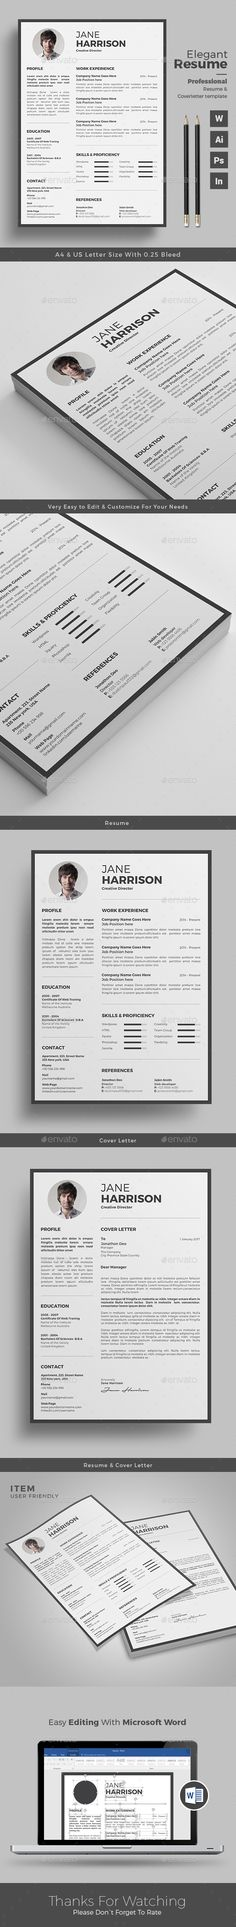 free cv doc template multiple pages